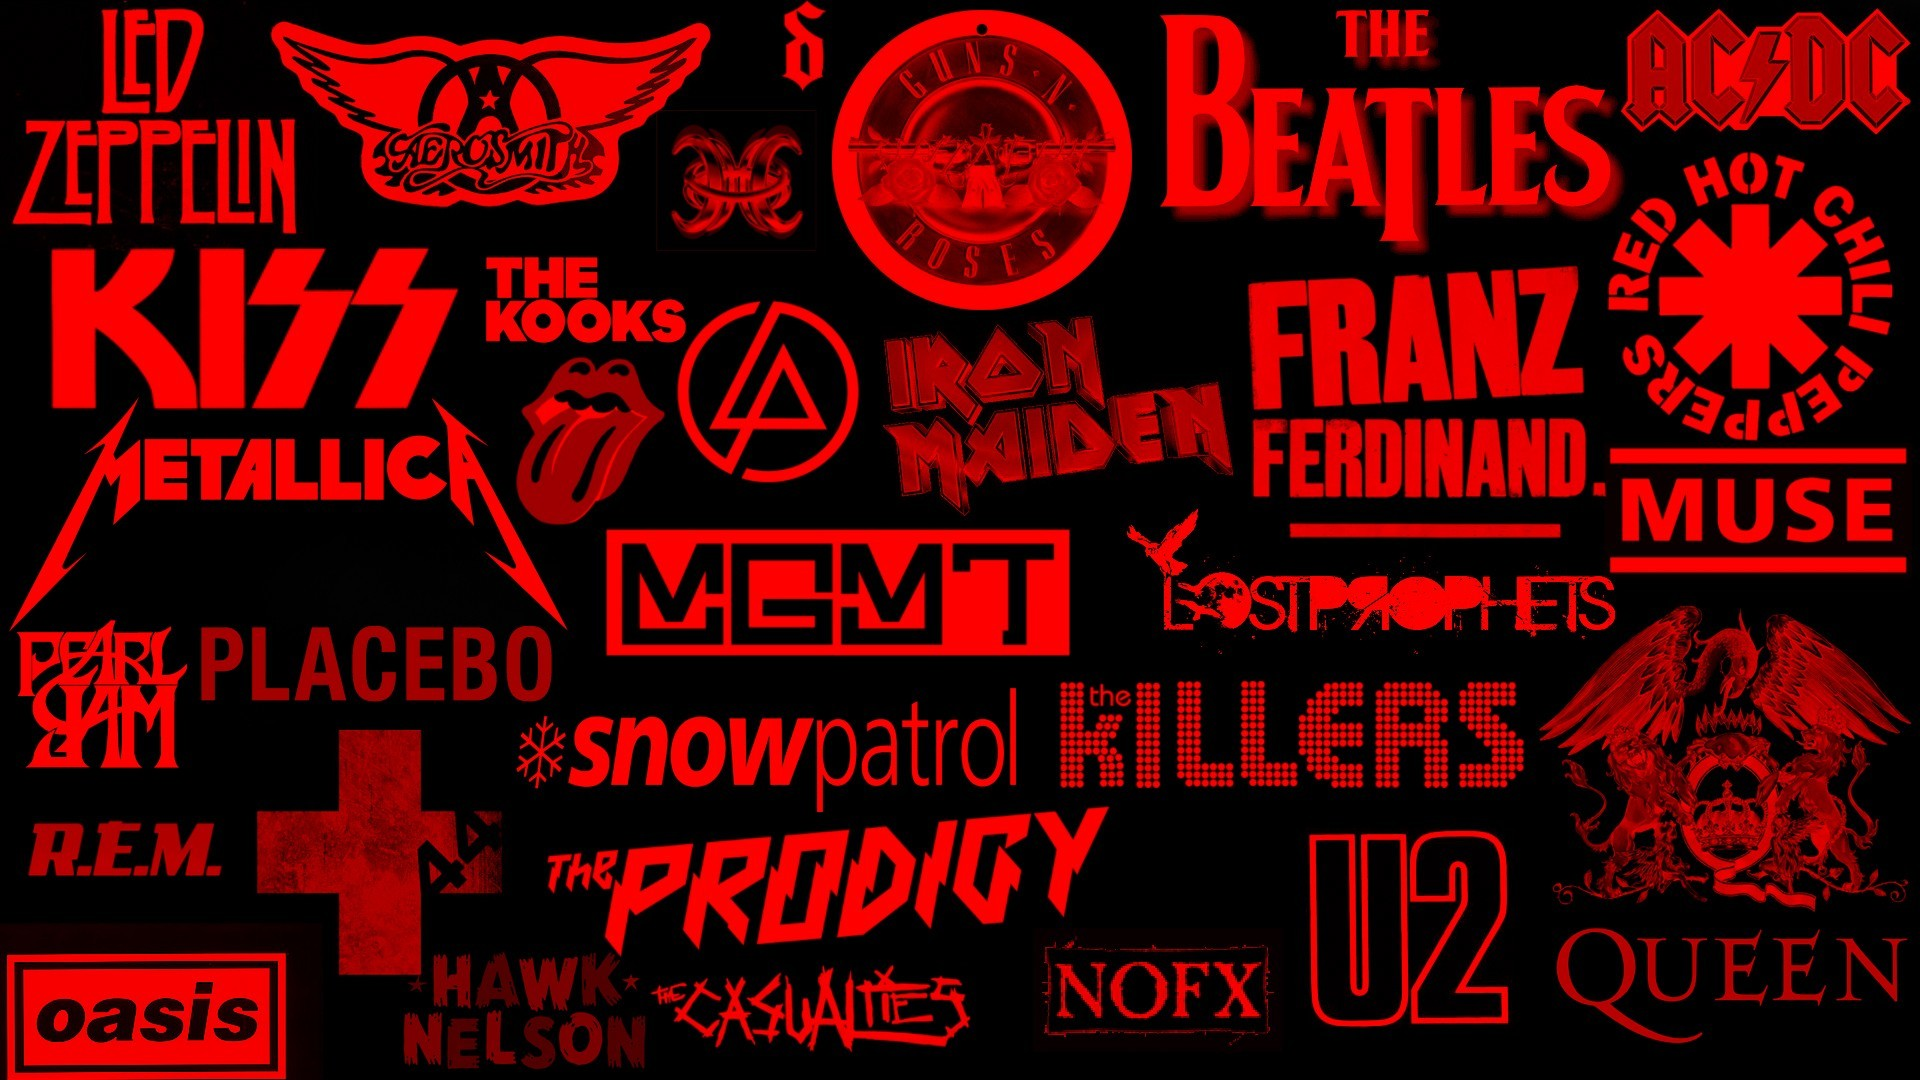 1920x1080 High Resolution Rock Music Wallpaper Full Size - SiWallpaperHD 18061